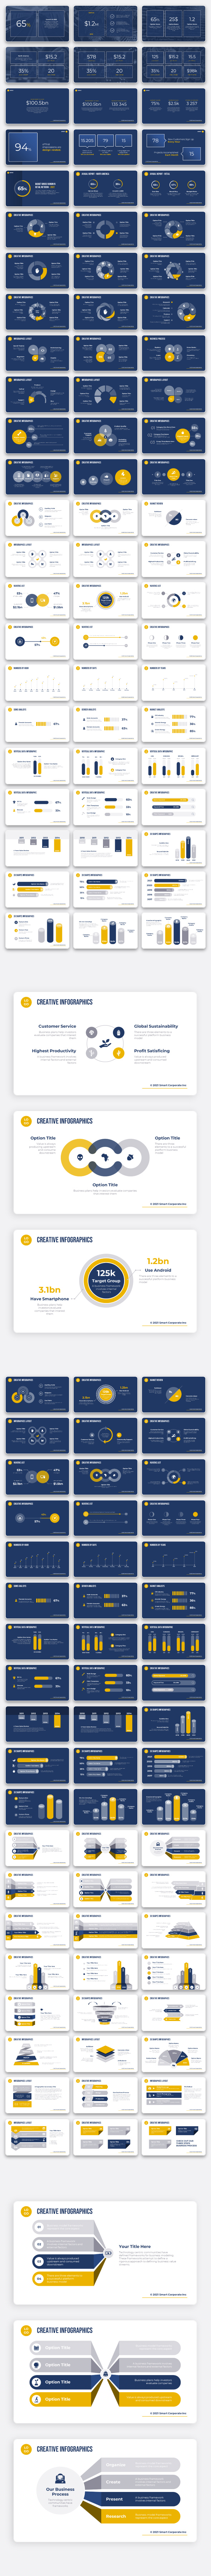 Corporate - Premium PowerPoint Template for Business - 10